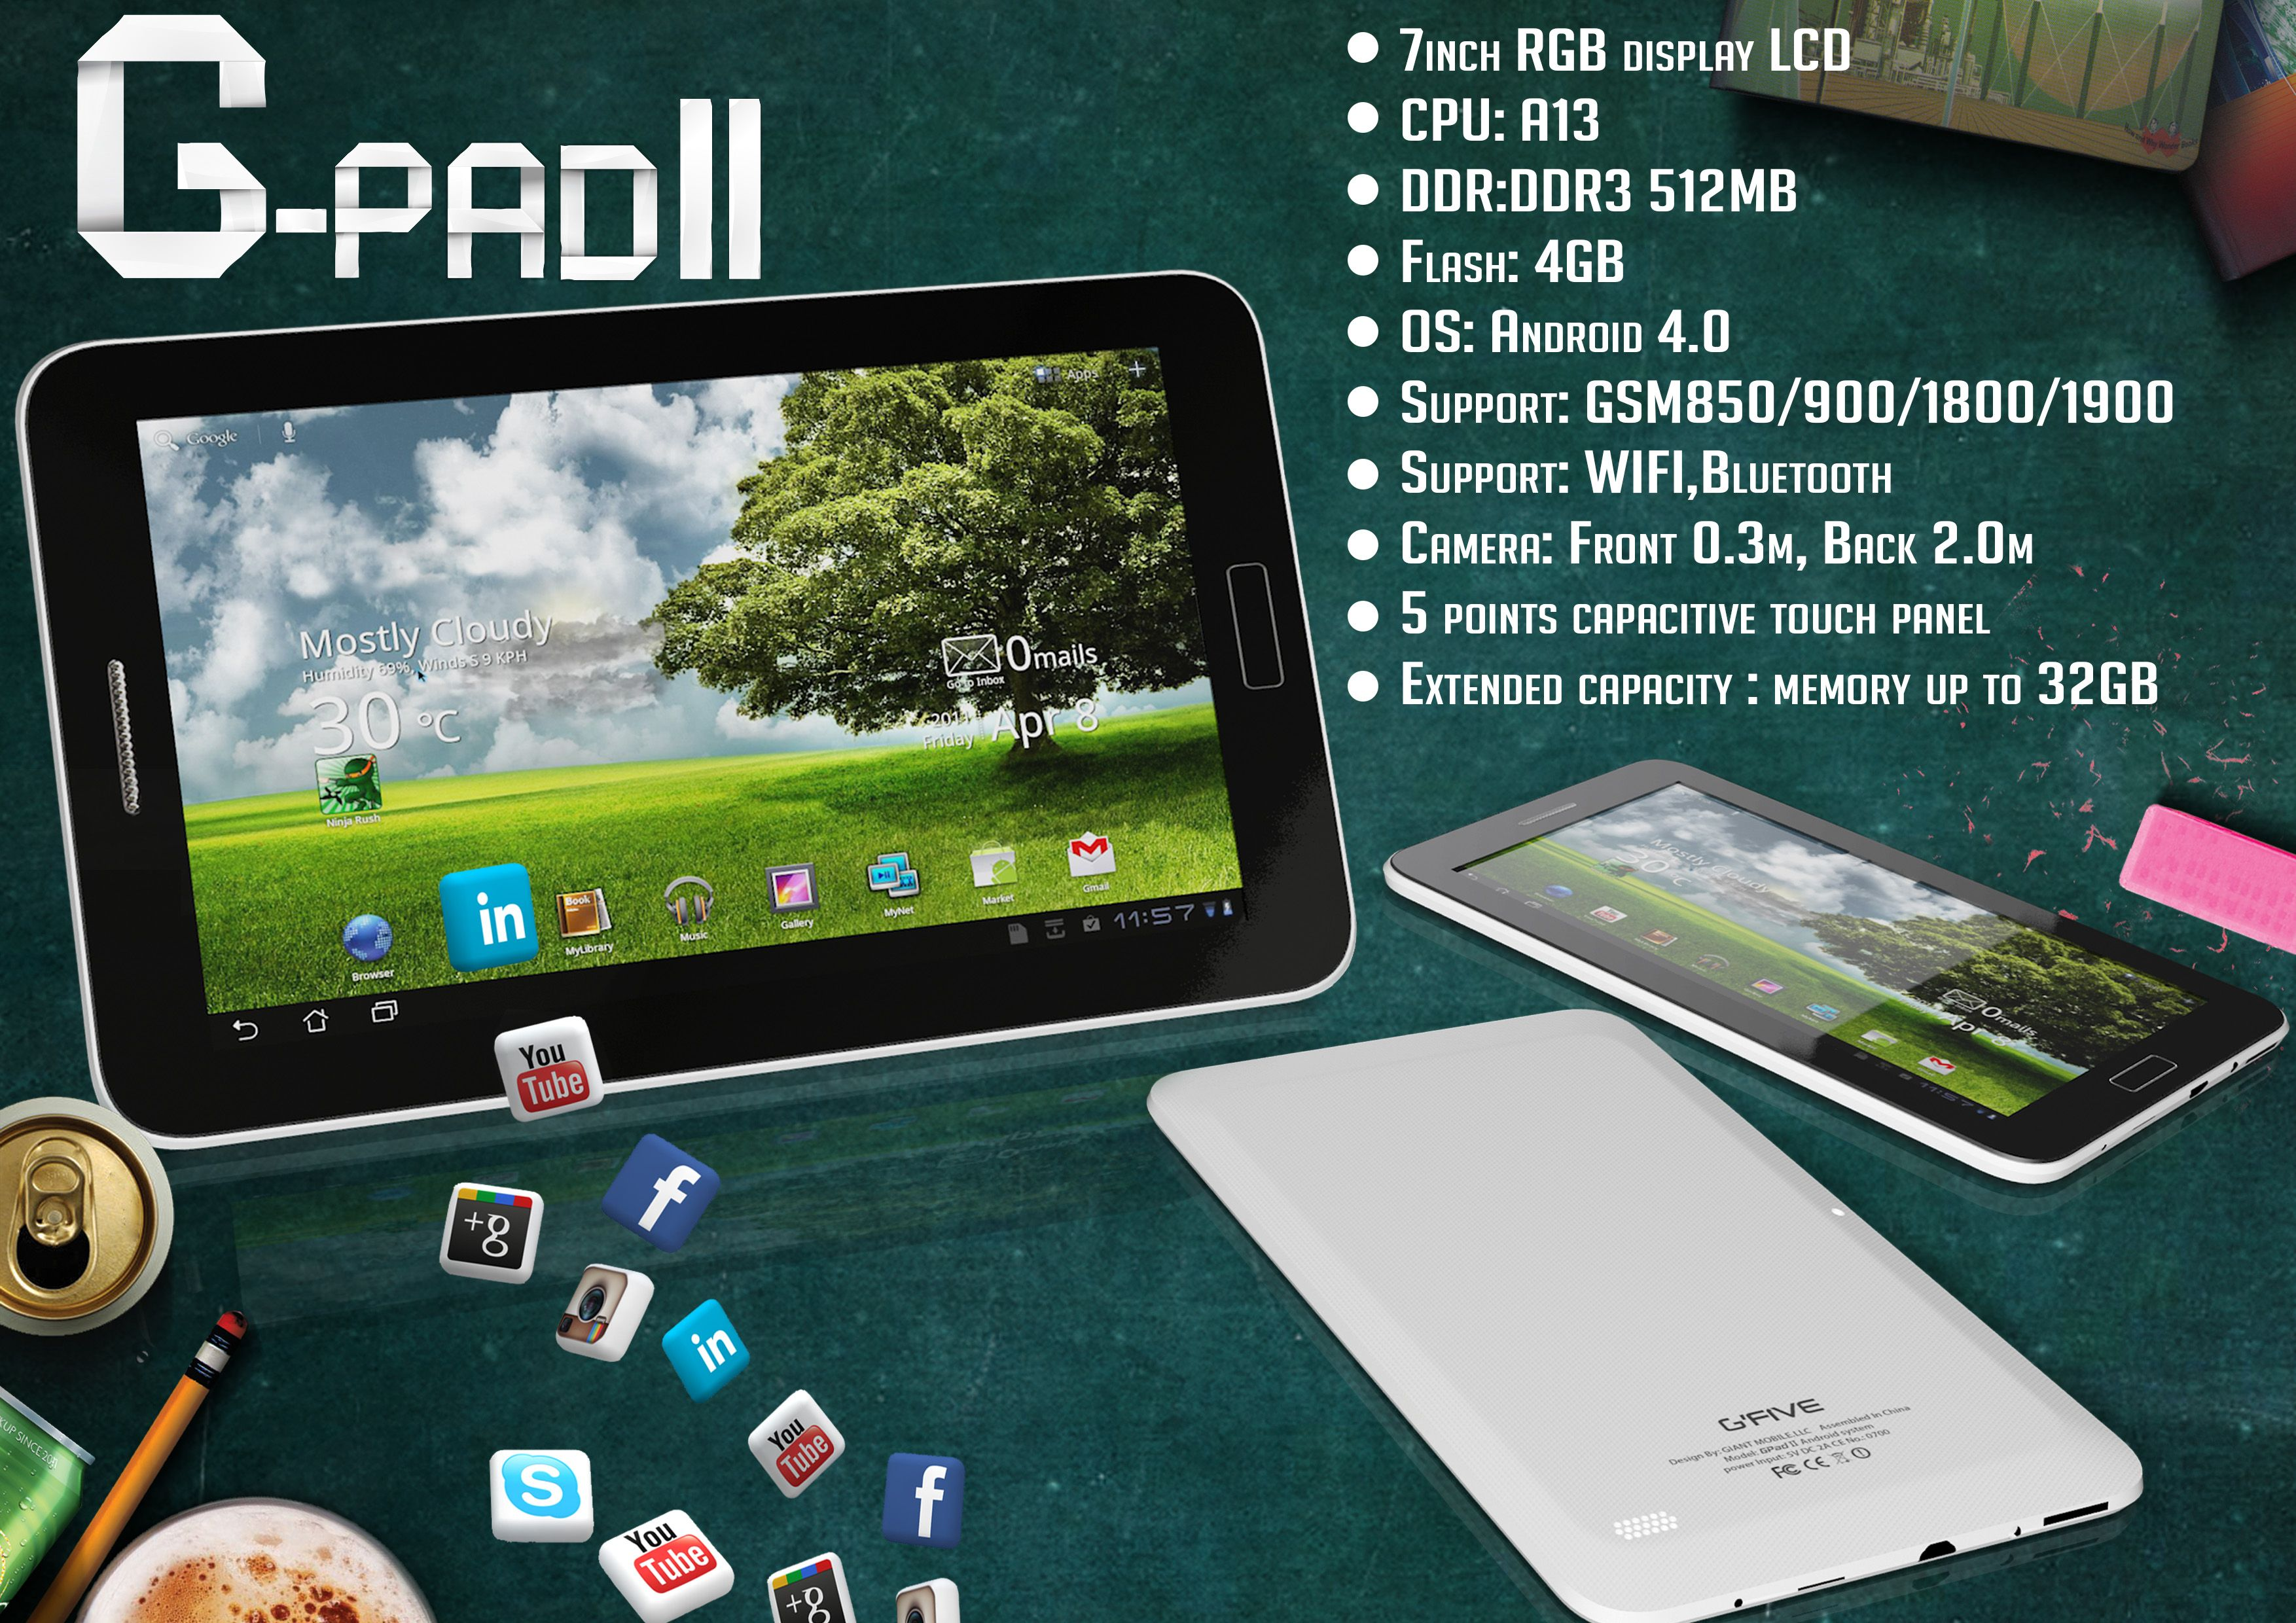 g-pad ii g'five mobile introducing first time g-pad ii in pakistan